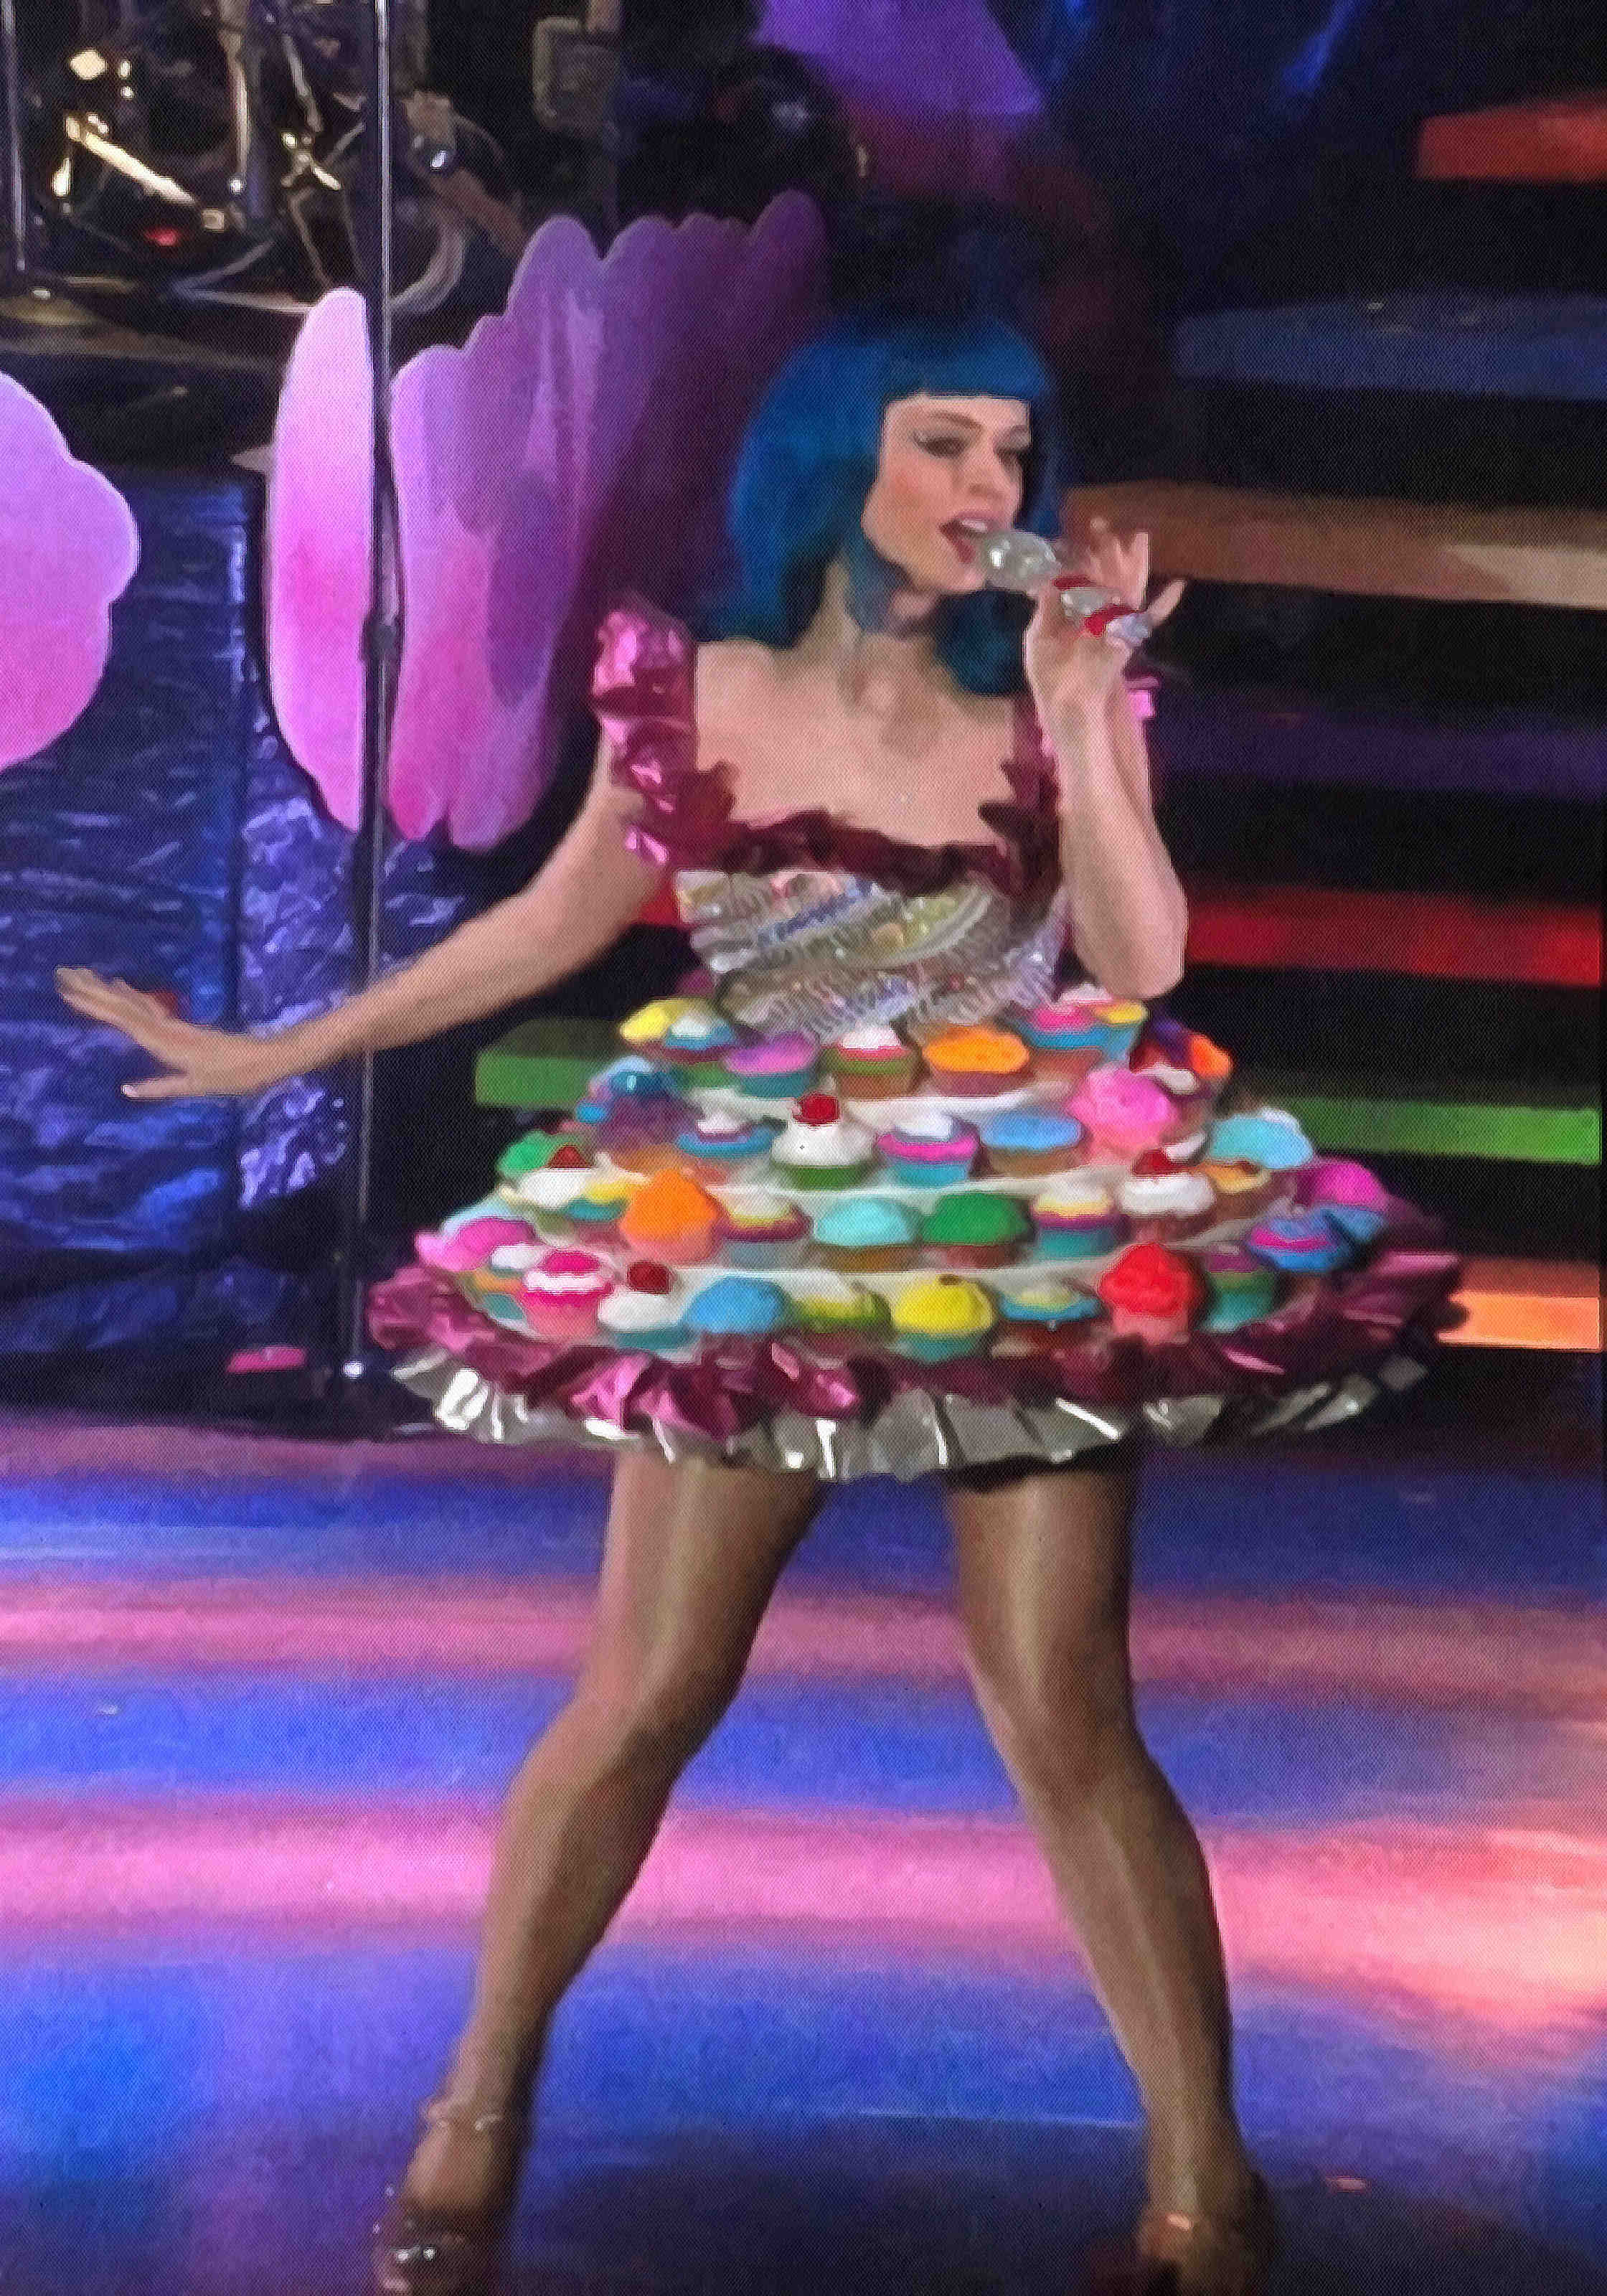 fun facts about katy perry